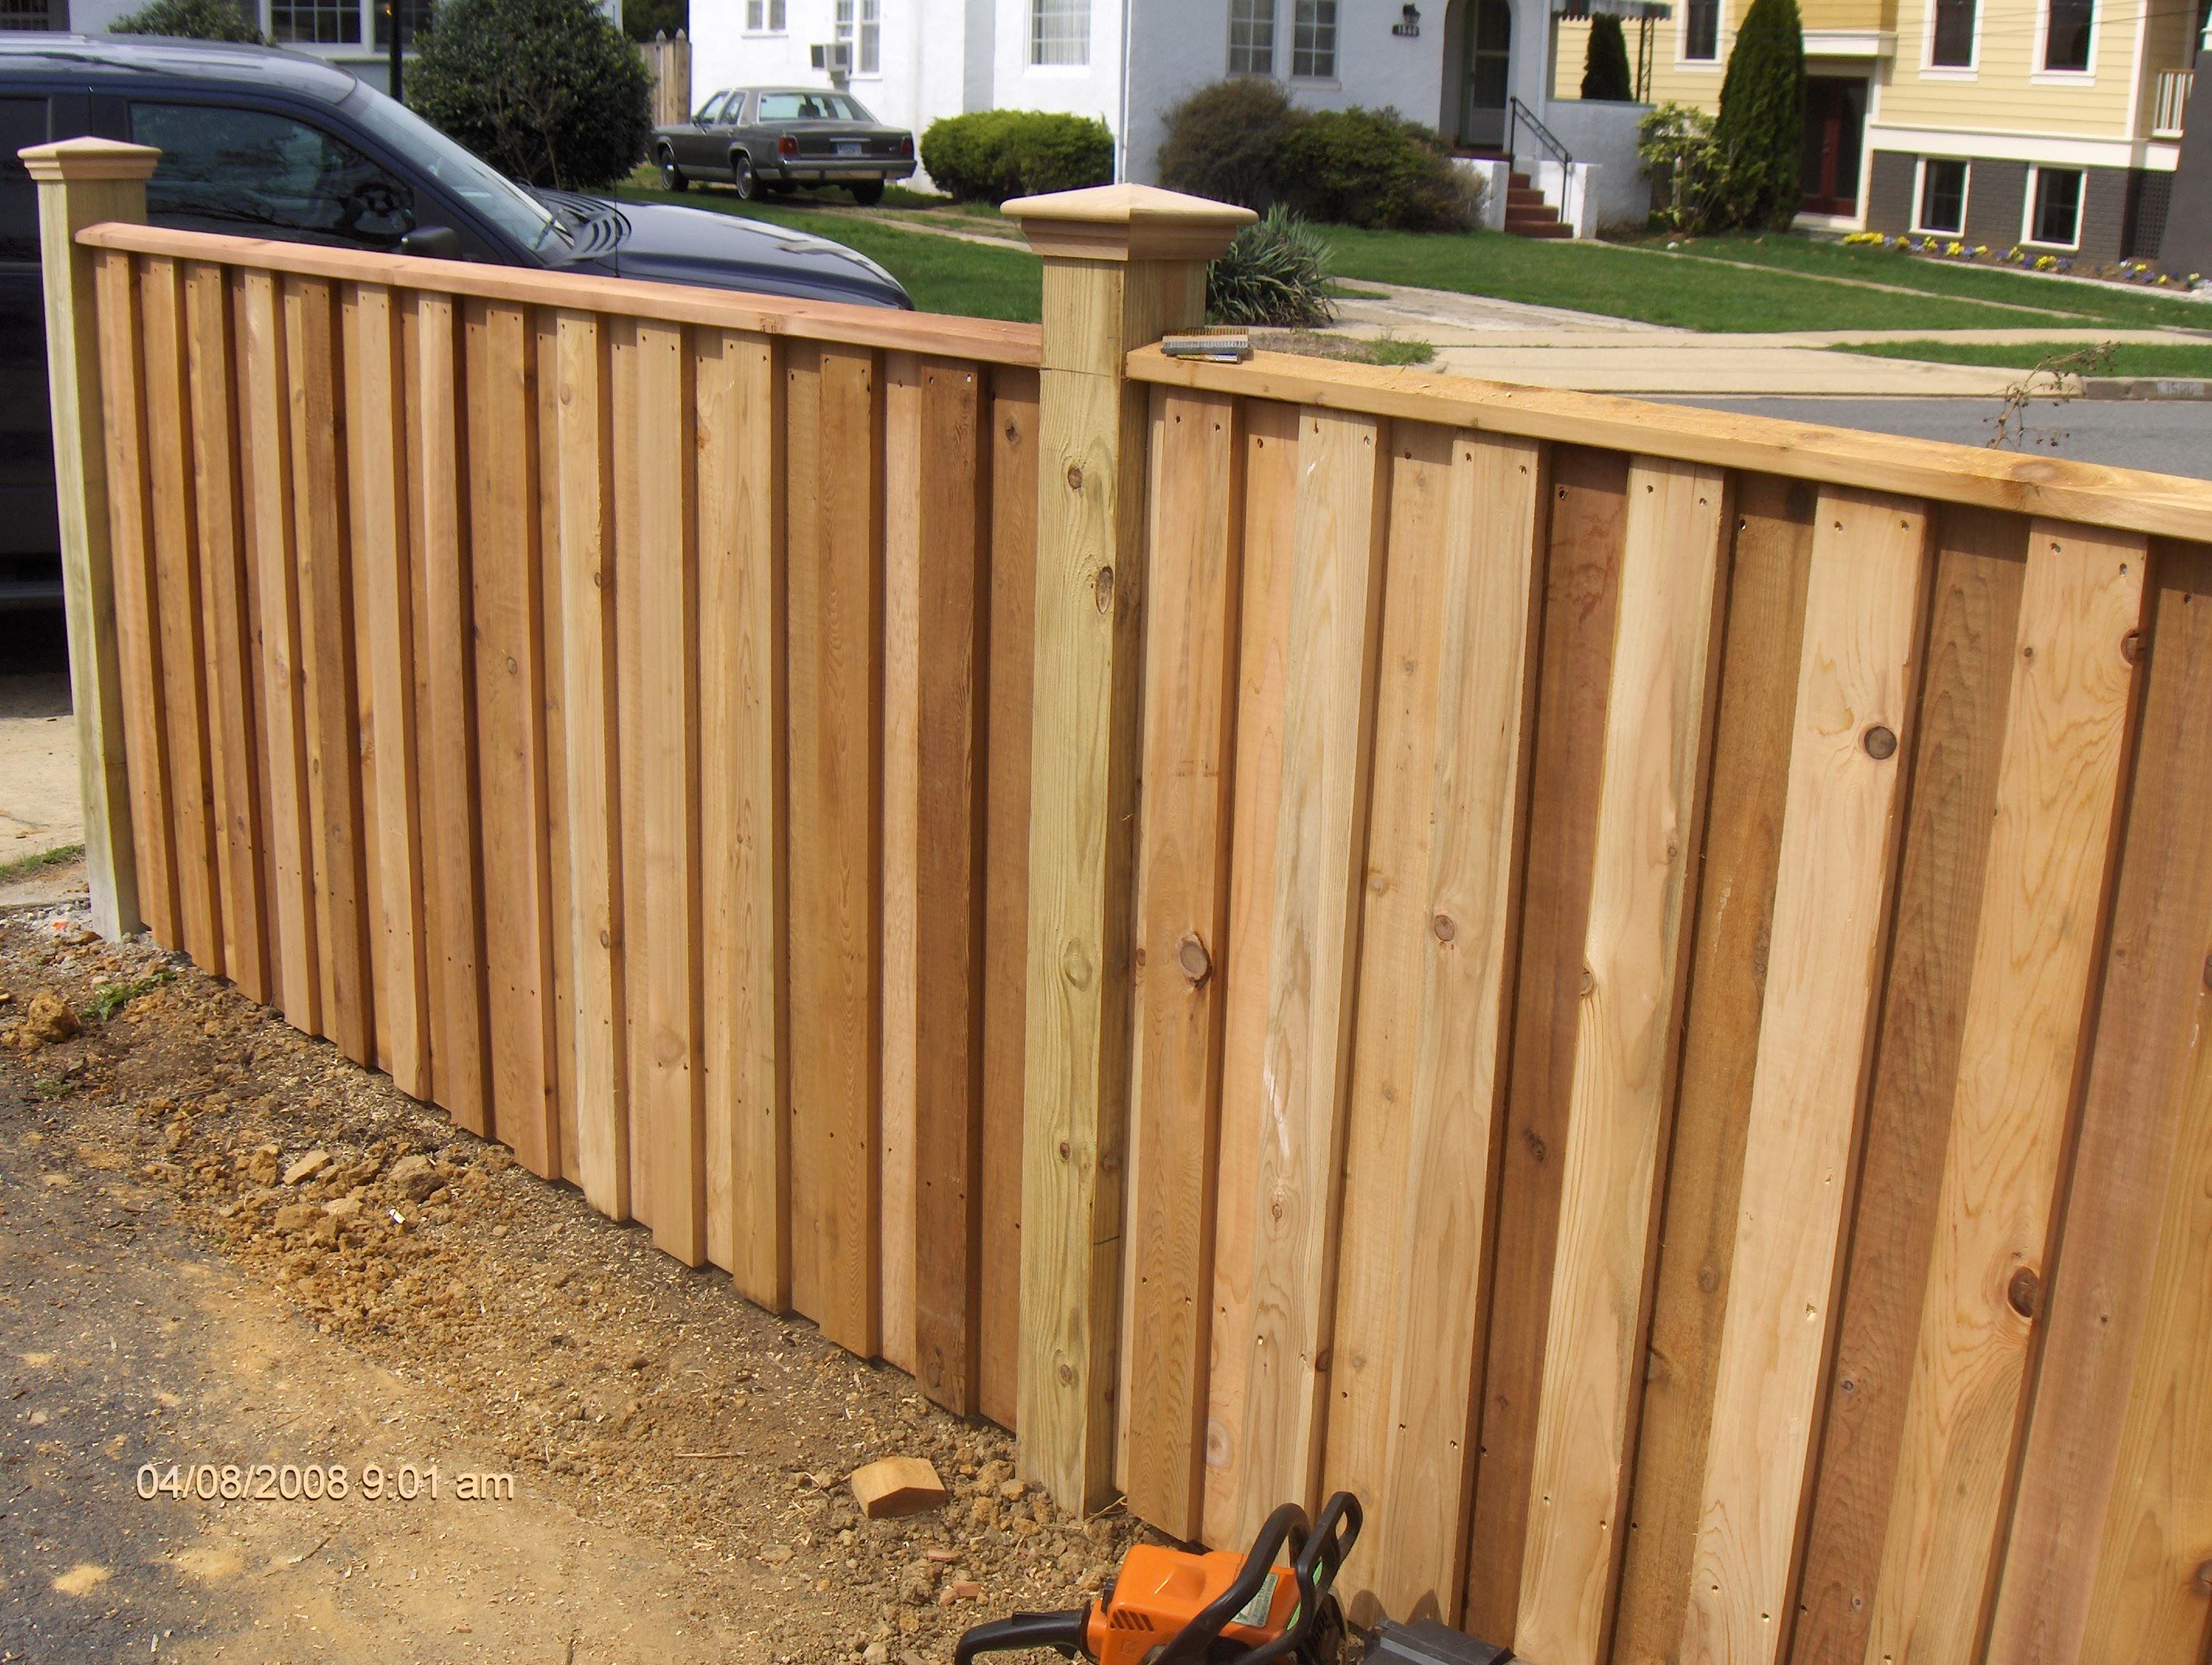 Wood Privacy Fence 6ft Privacy Fence Large Privacy Fence Wood